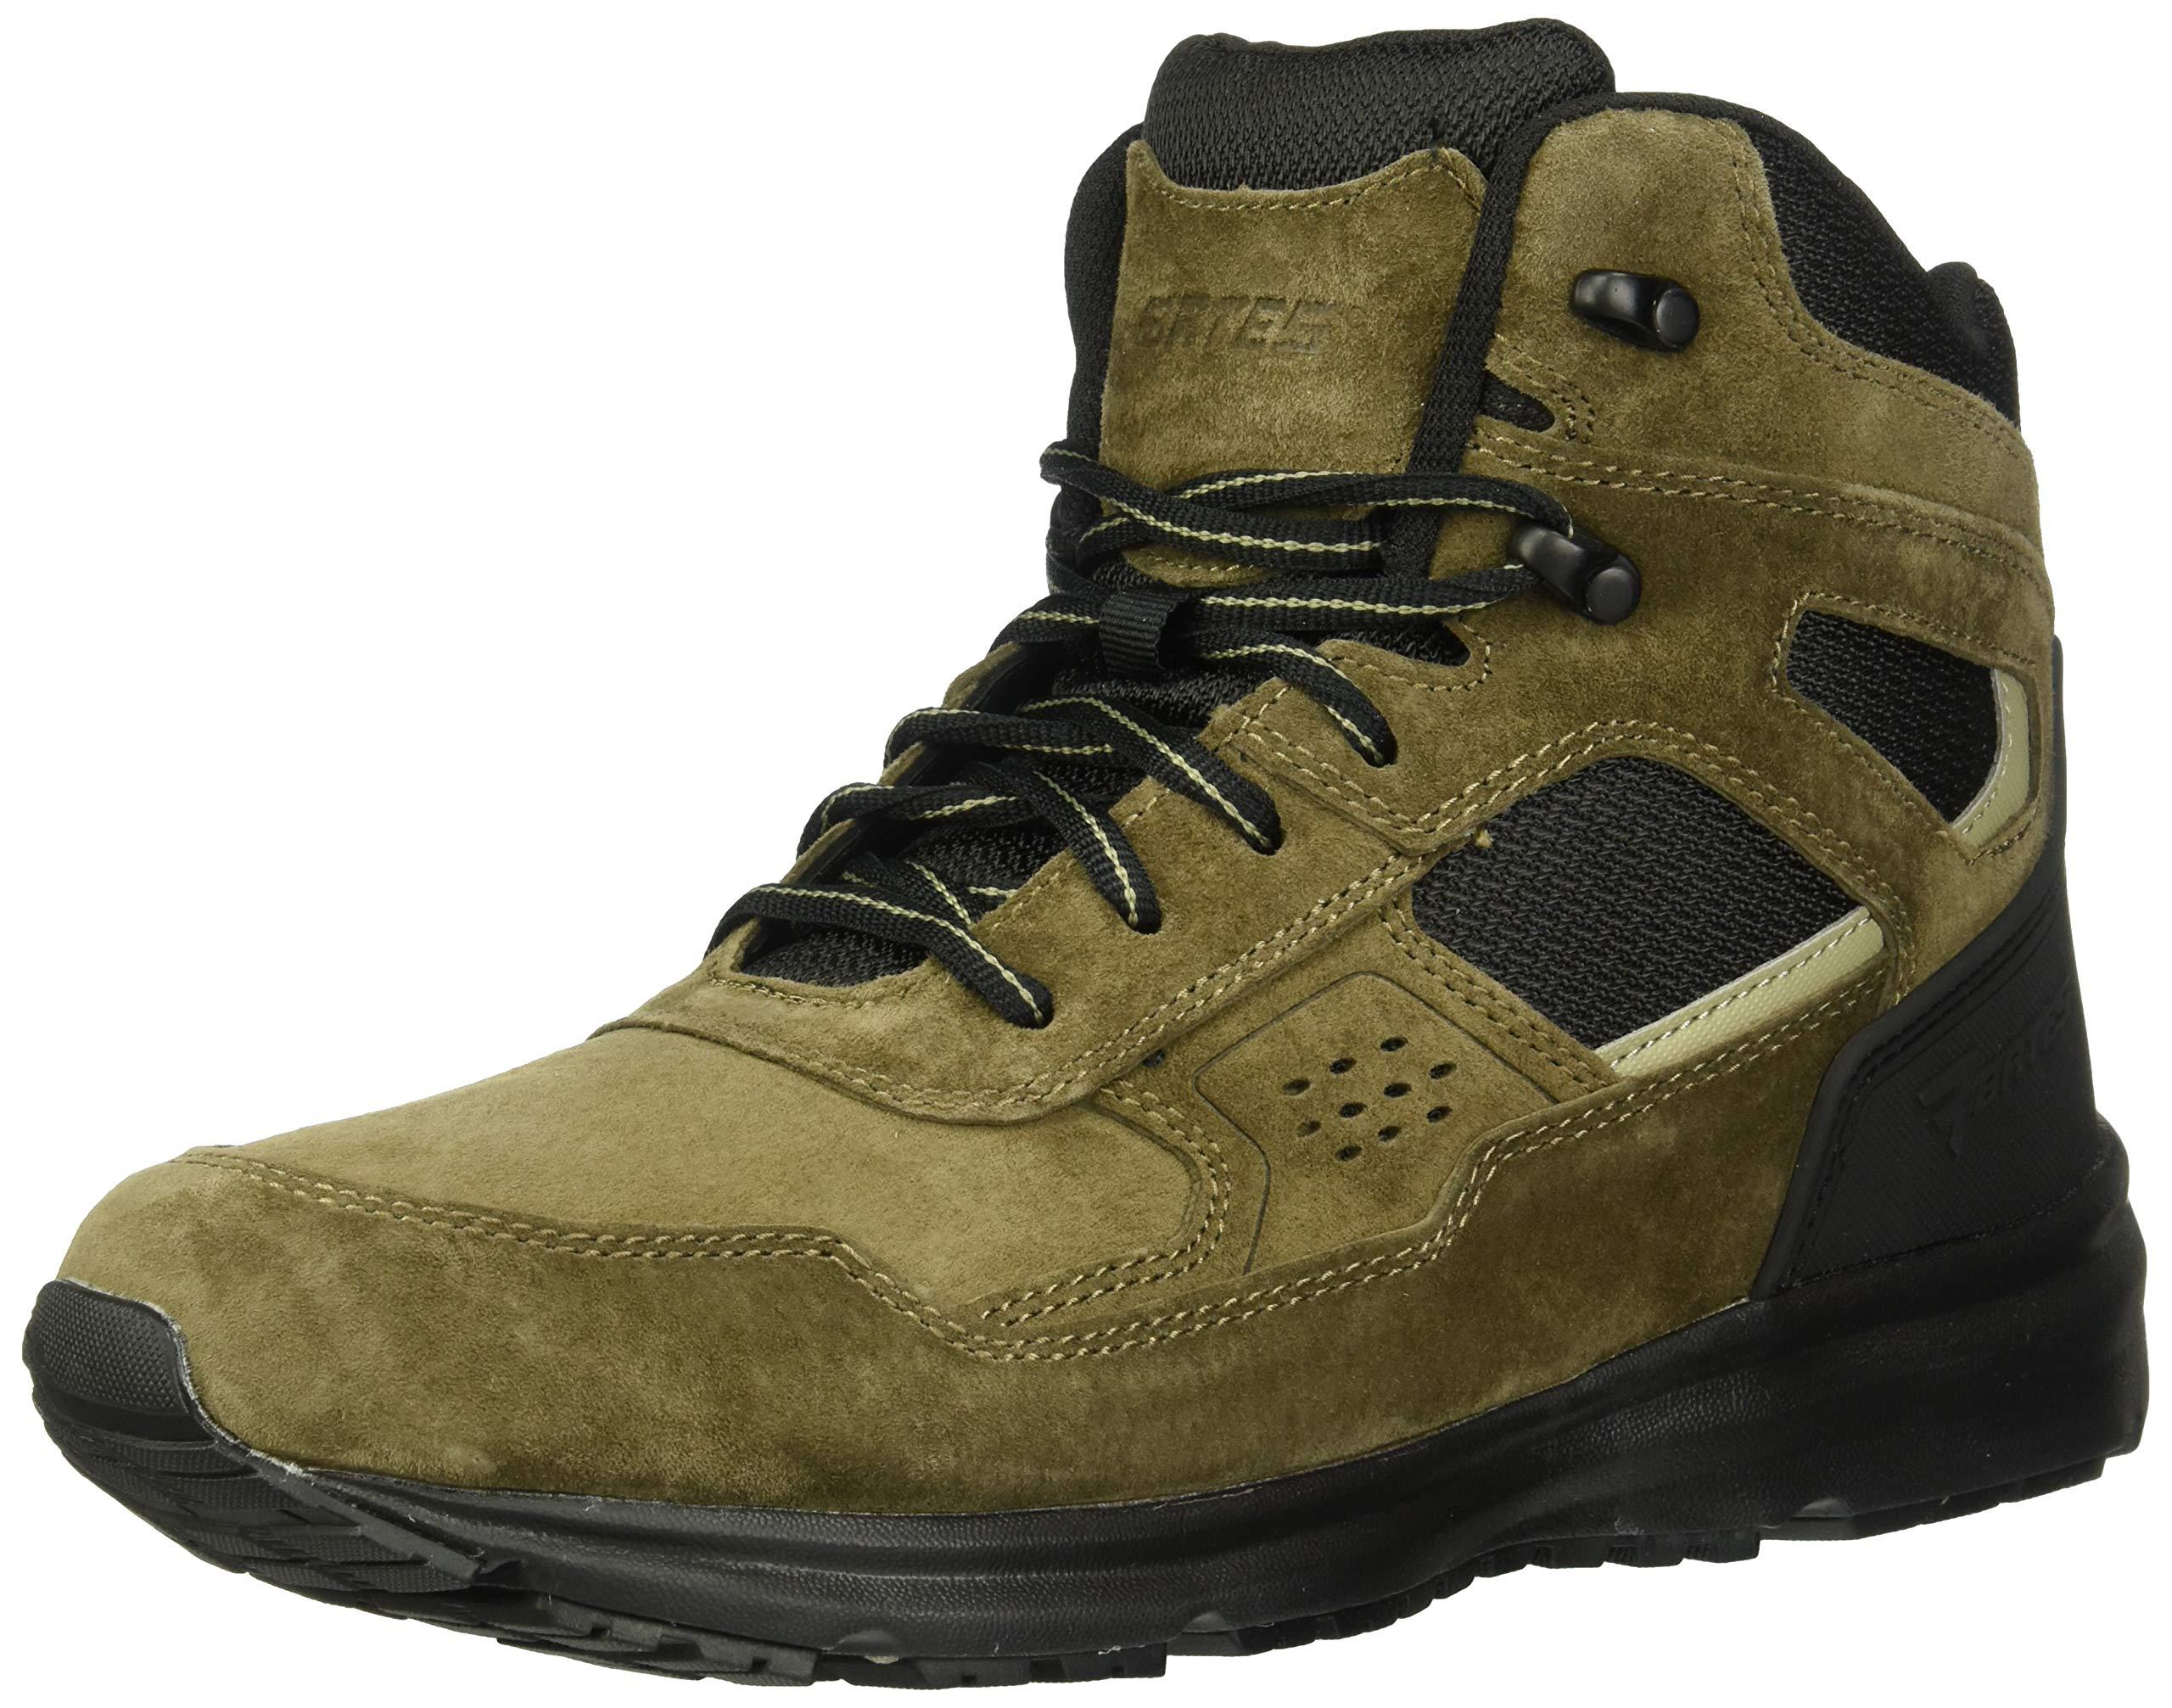 Bates Men's Raide Trail Mid Fire and Safety Boot, Canteen, 10.5 M US by Bates